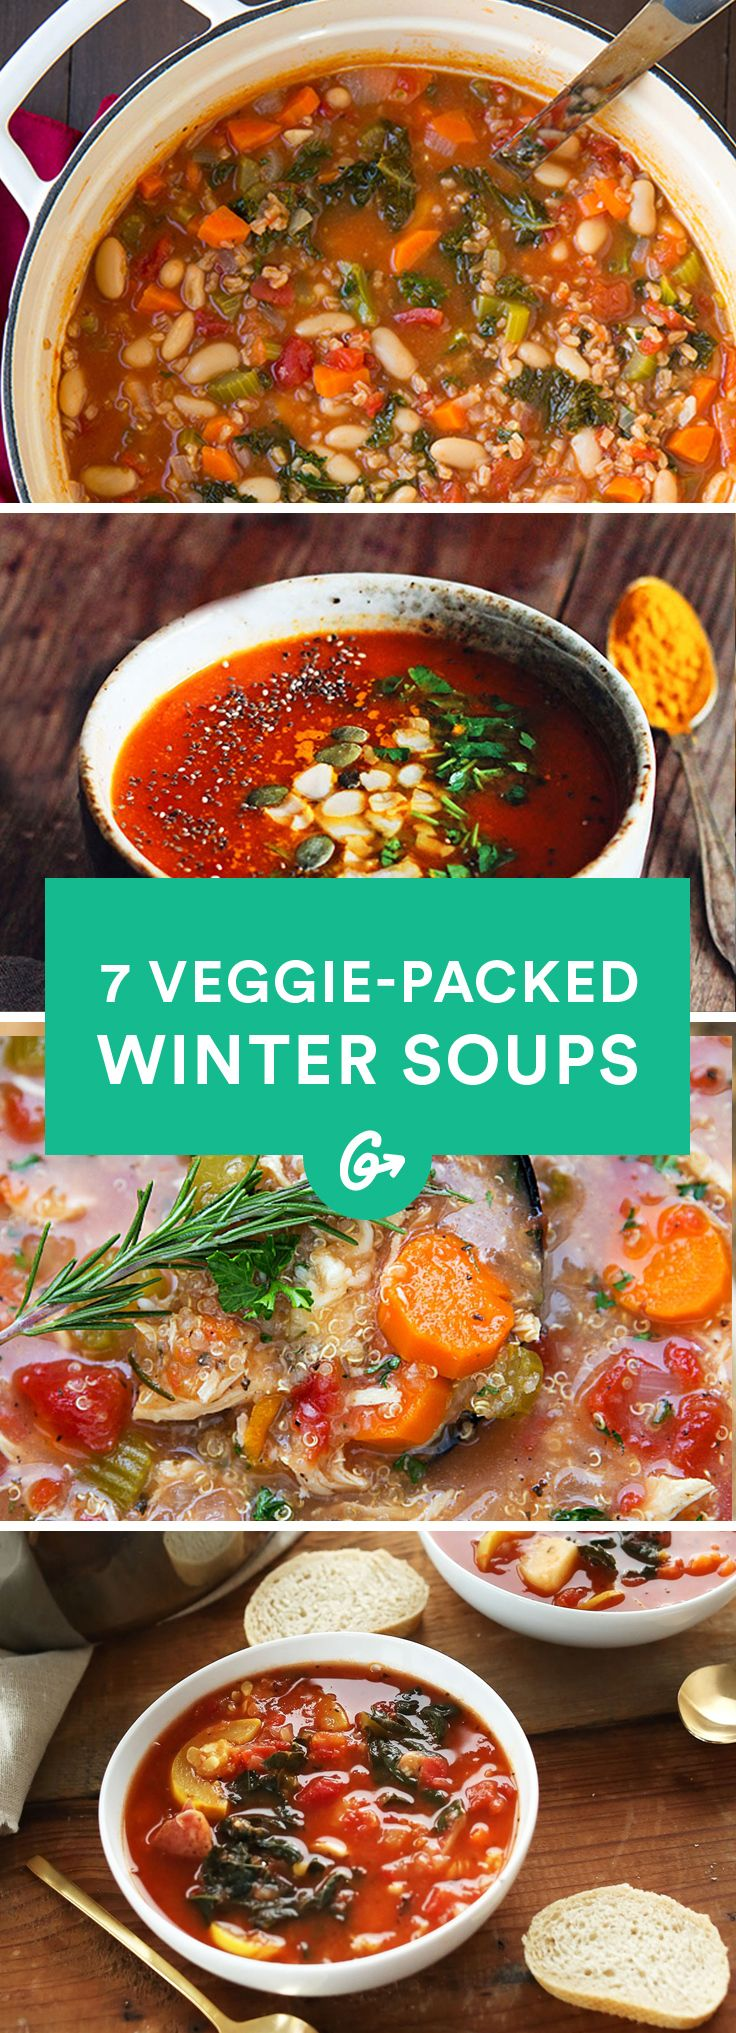 7 Quick and Healthy Winter Soups #soup #recipes http://greatist.com/eat/winter-soup-recipes